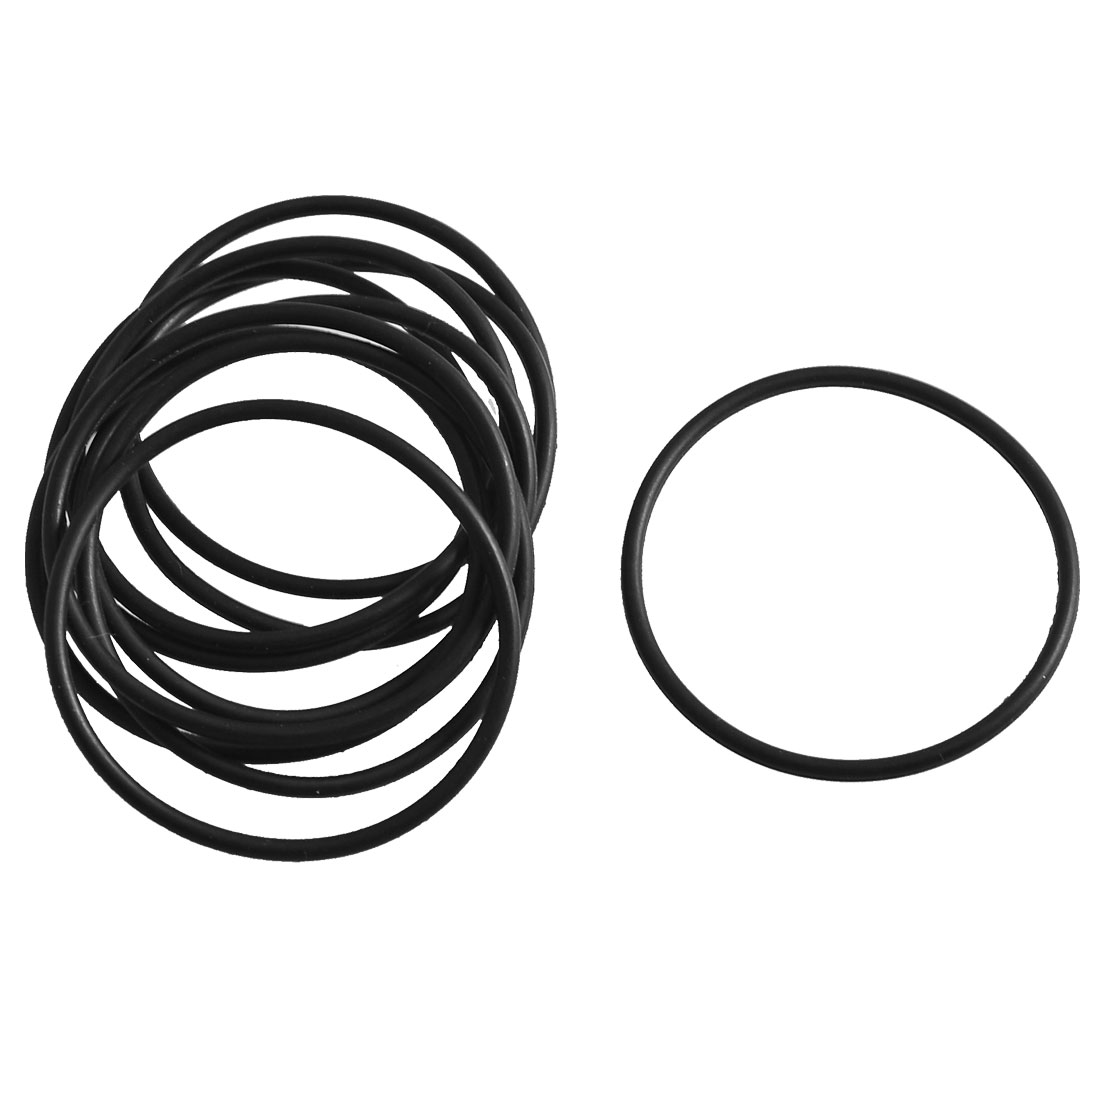 10 Pcs Black Rubber Oil Filter Sealing O Ring Gasket 35.5mm x 1.8mm